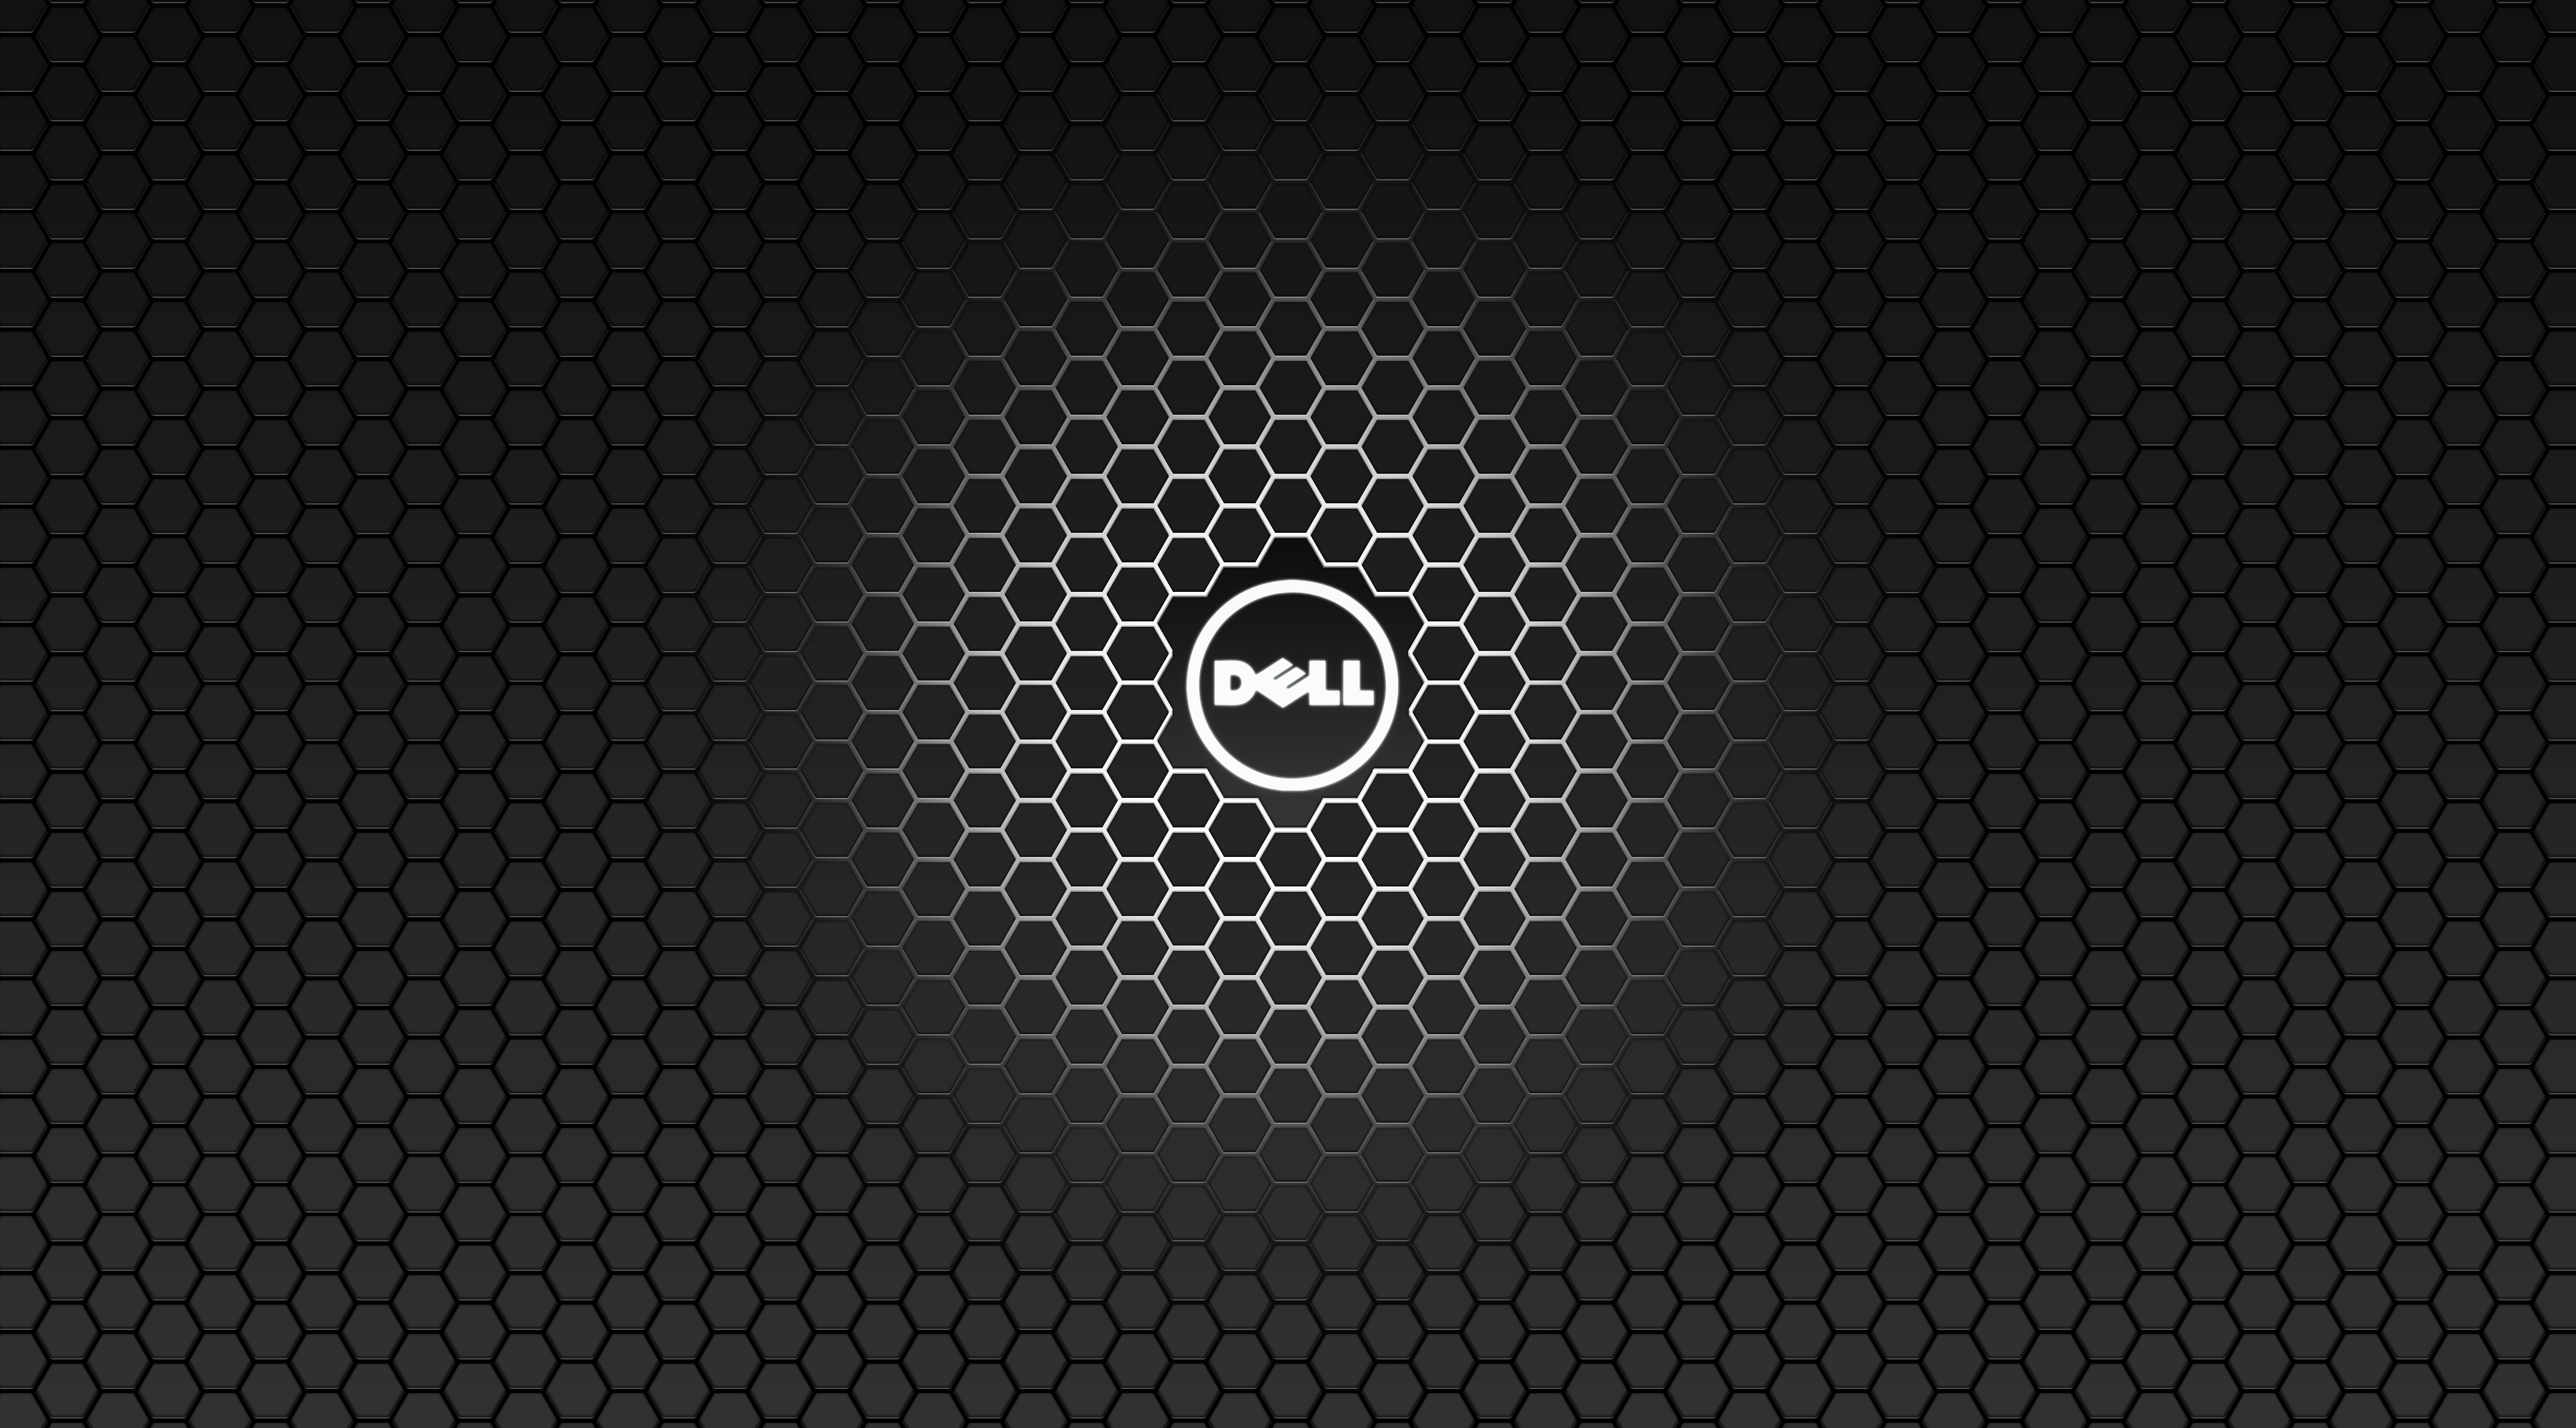 Hp  paq Pro 6305 Microtower Pc also Cool  puter Backgrounds moreover Dell Precision Tower 3000 Series together with 10 Tech Logos With Triangular Mesh Backgrounds 1181 likewise 5 Ways Adobe Stock Will Revolutionise Your Motion Graphics Work. on dell dimension desktop computer